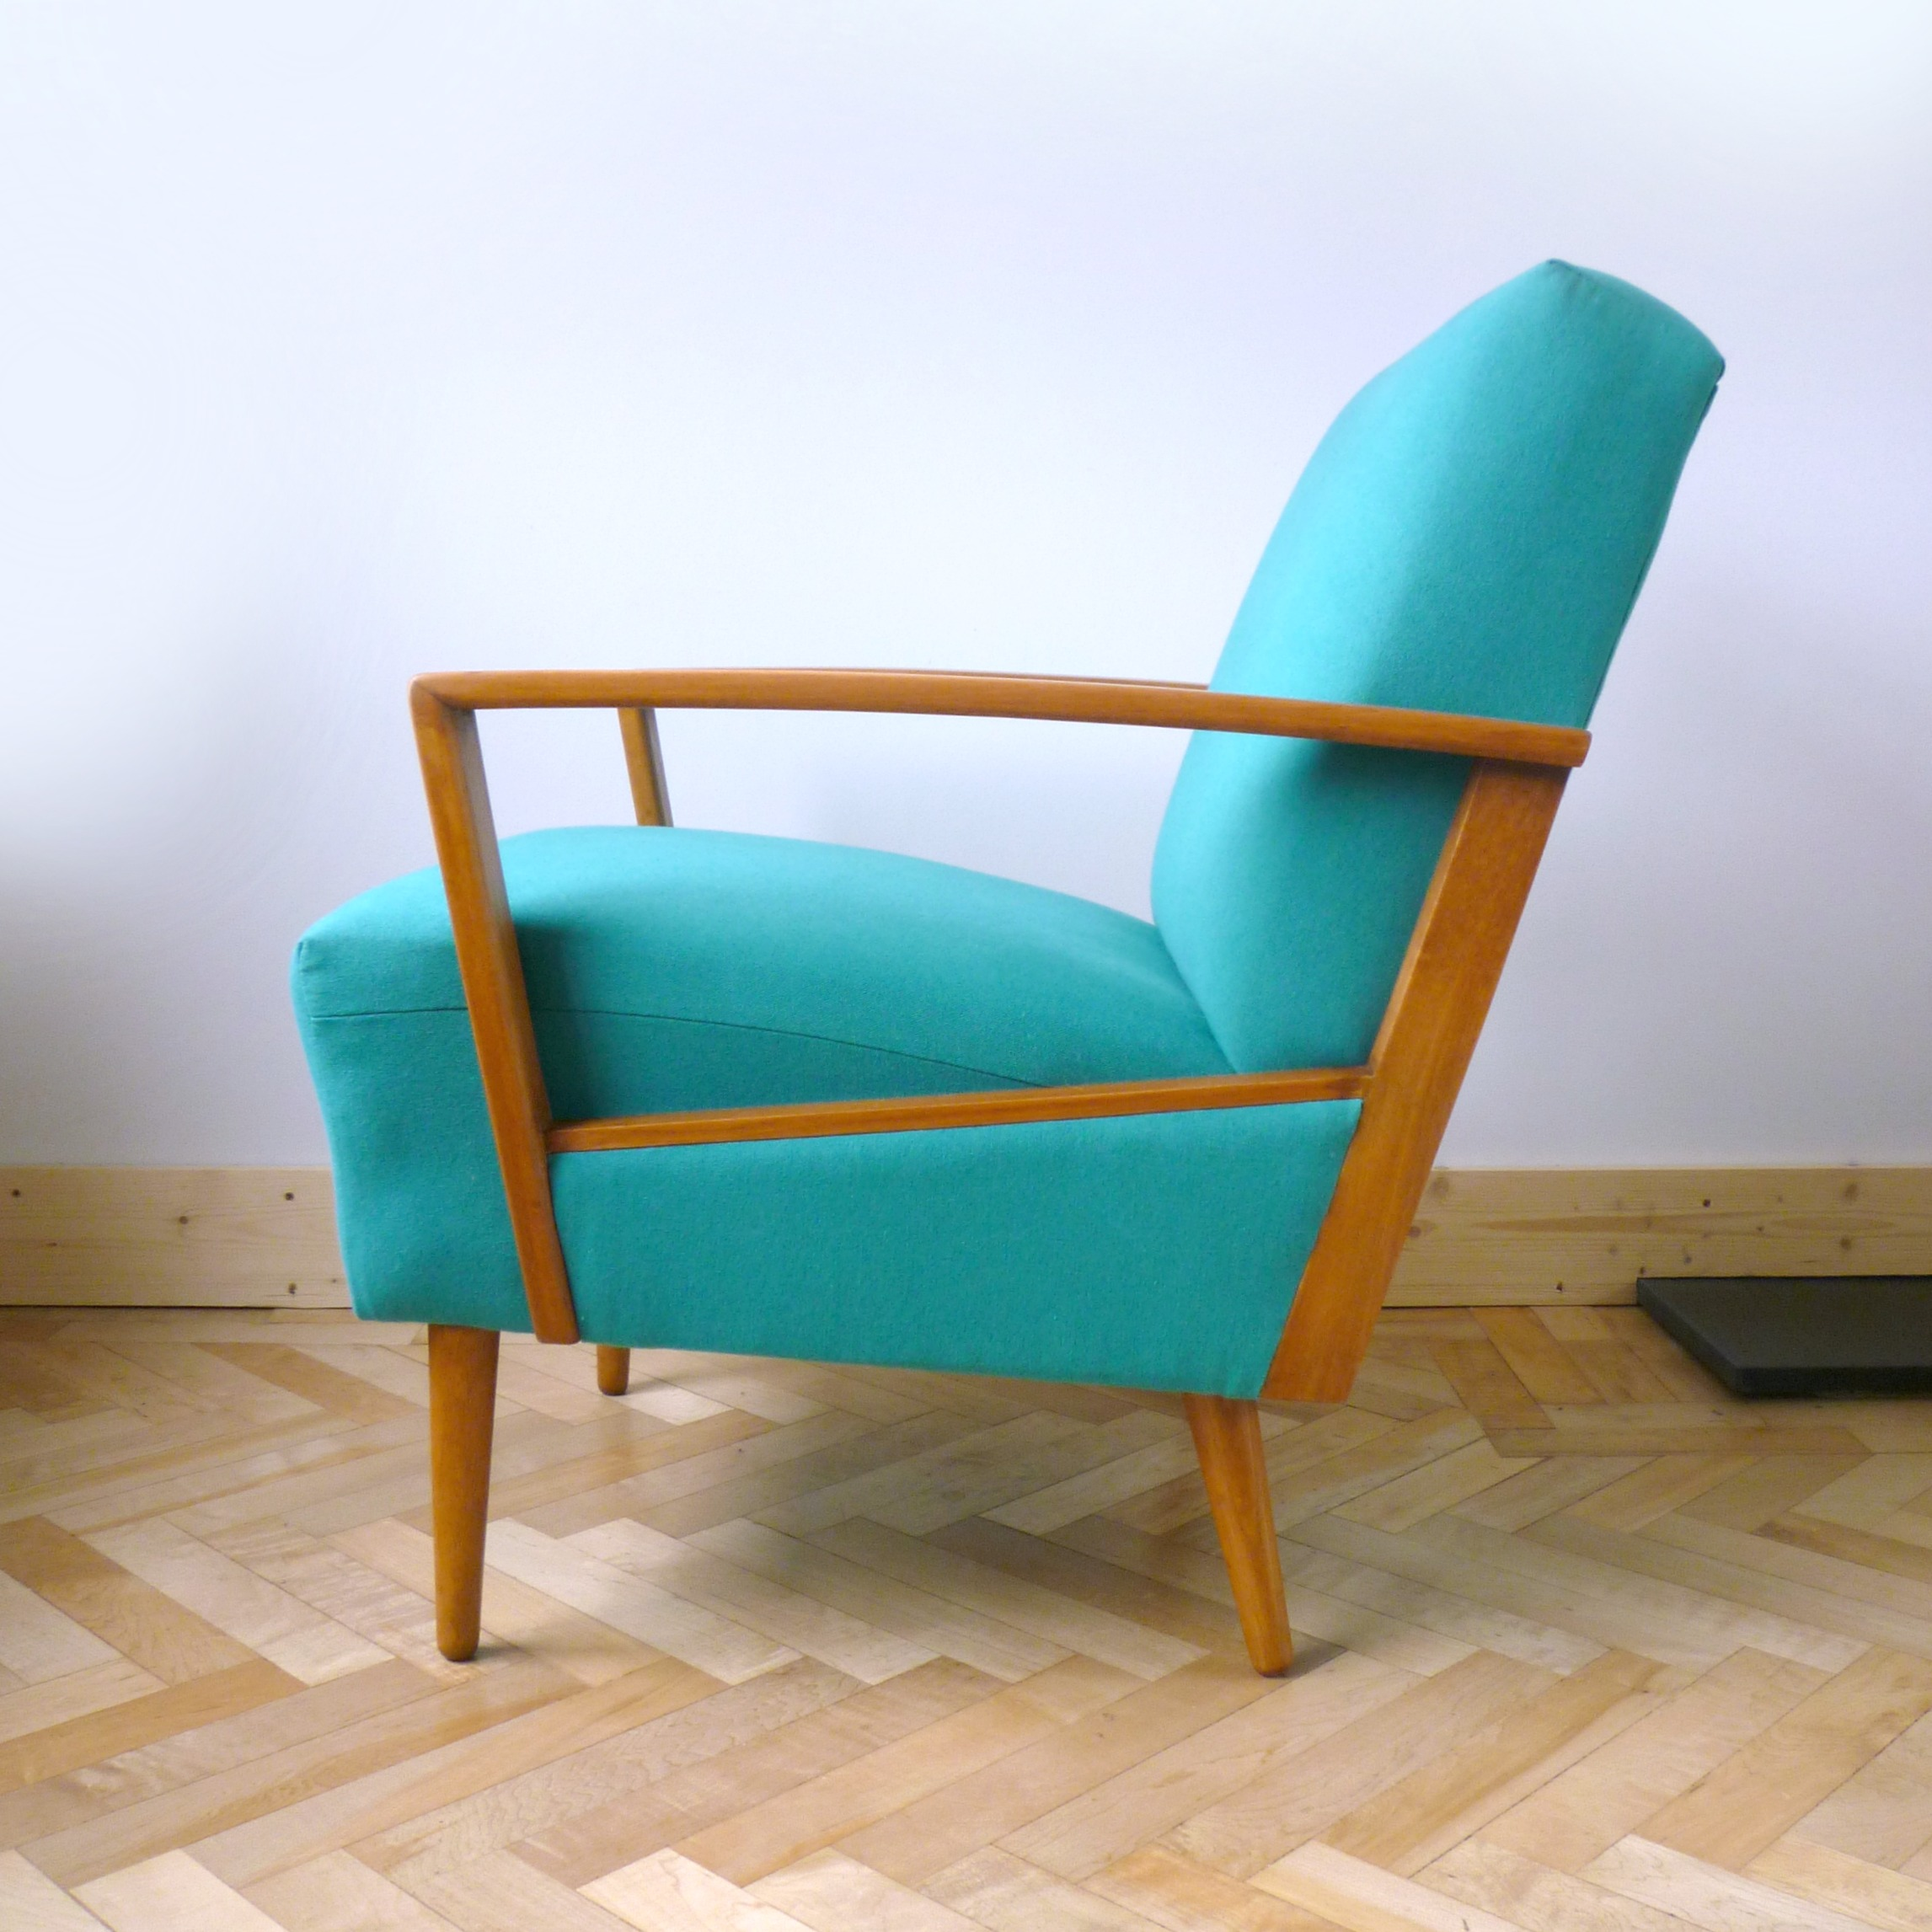 Unique Armchairs Teal Retro Danish Armchair From Drab To Dreamy Florrie 43bill